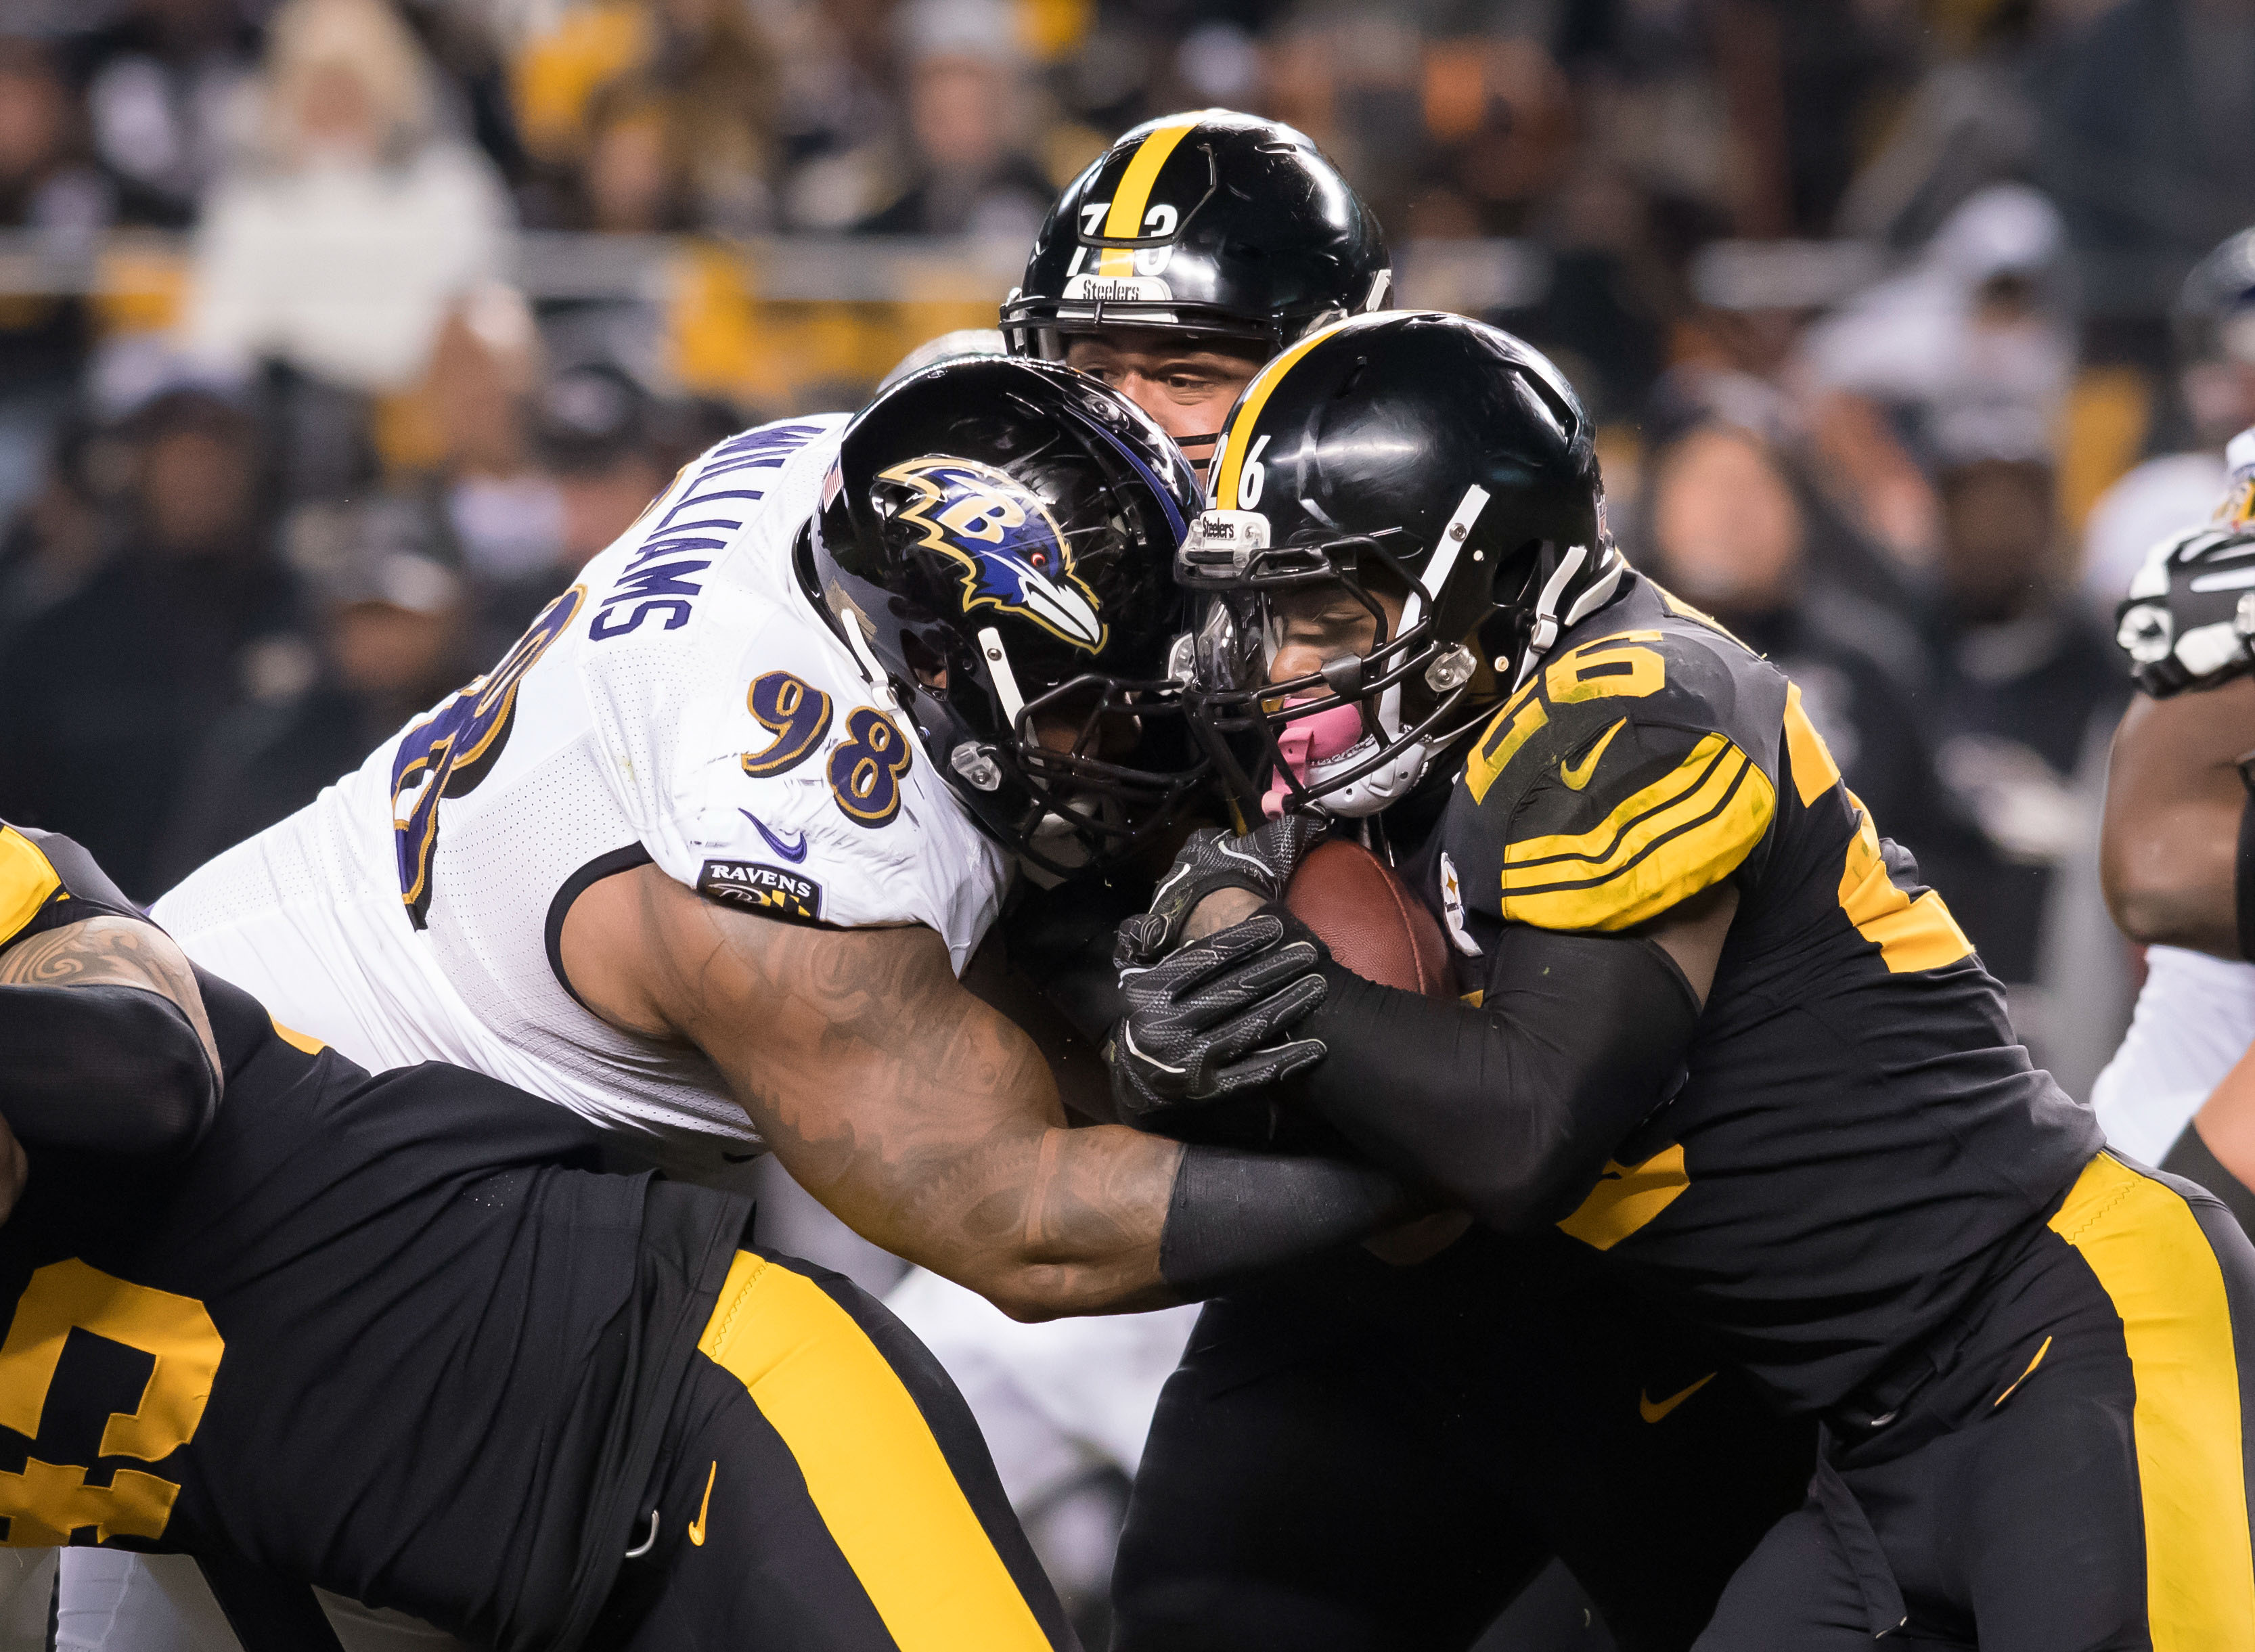 9785759-nfl-baltimore-ravens-at-pittsburgh-steelers-2